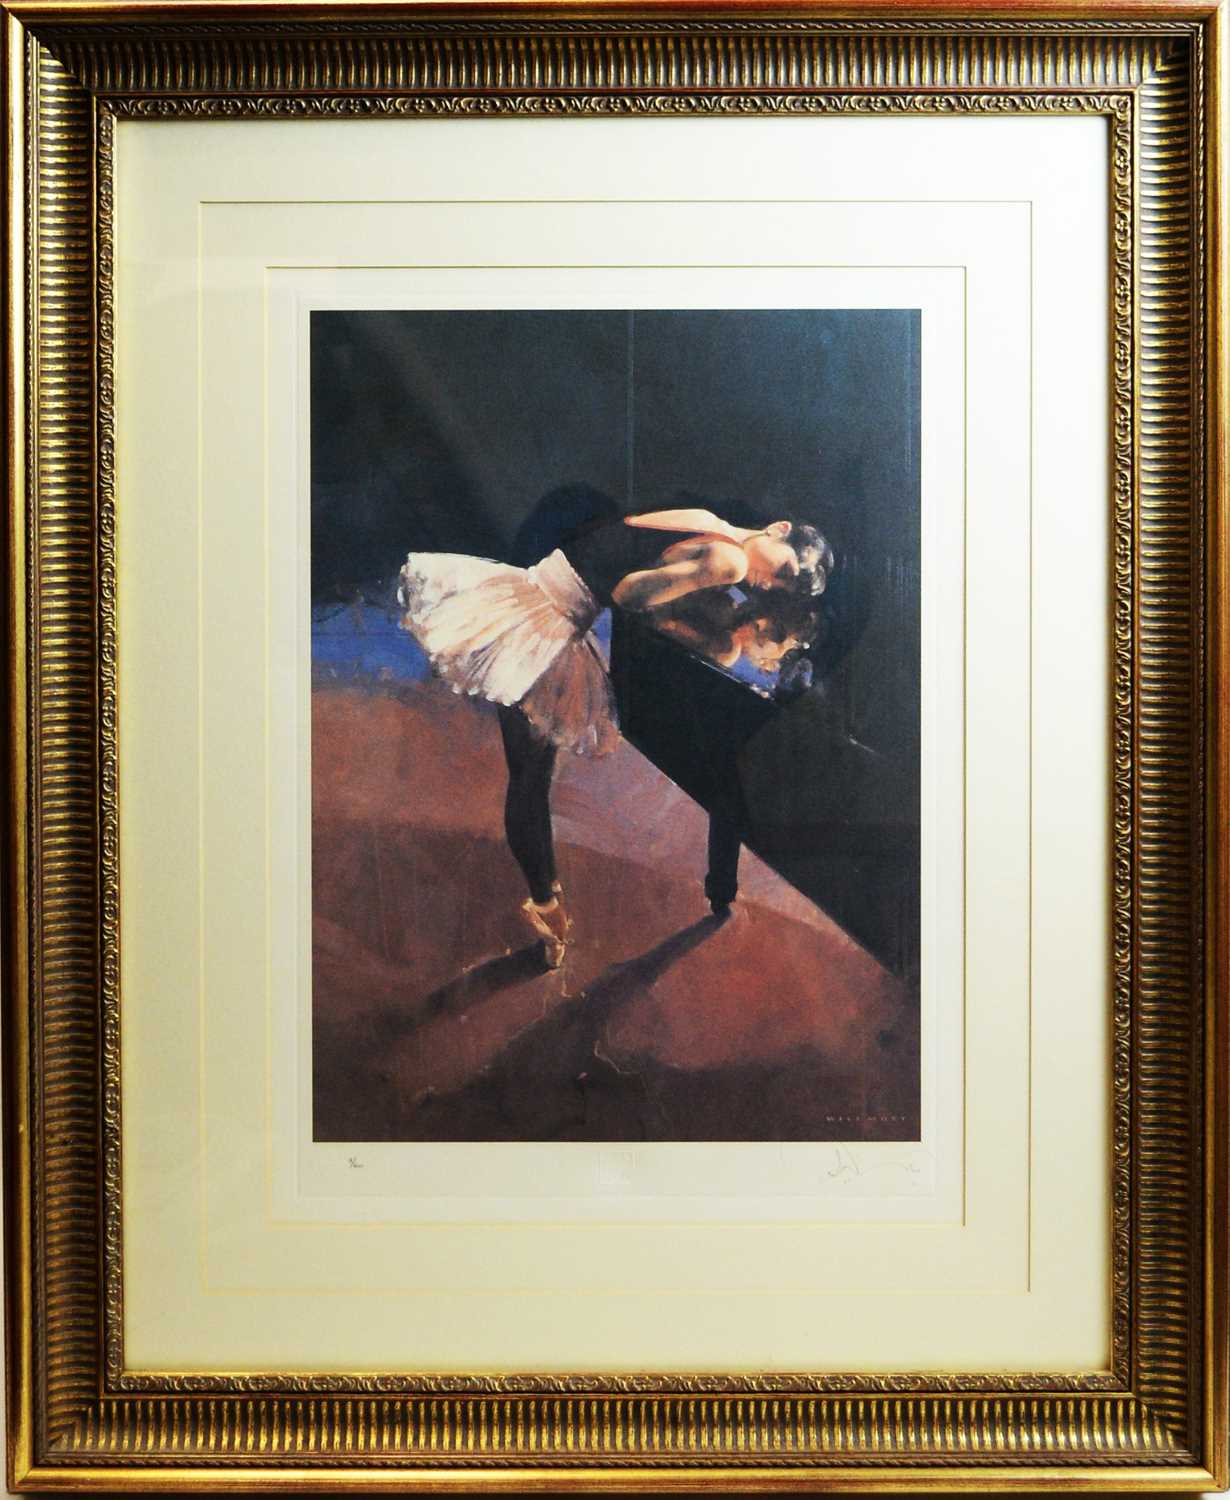 Lot 642 - Charles Willmott - limited edition.